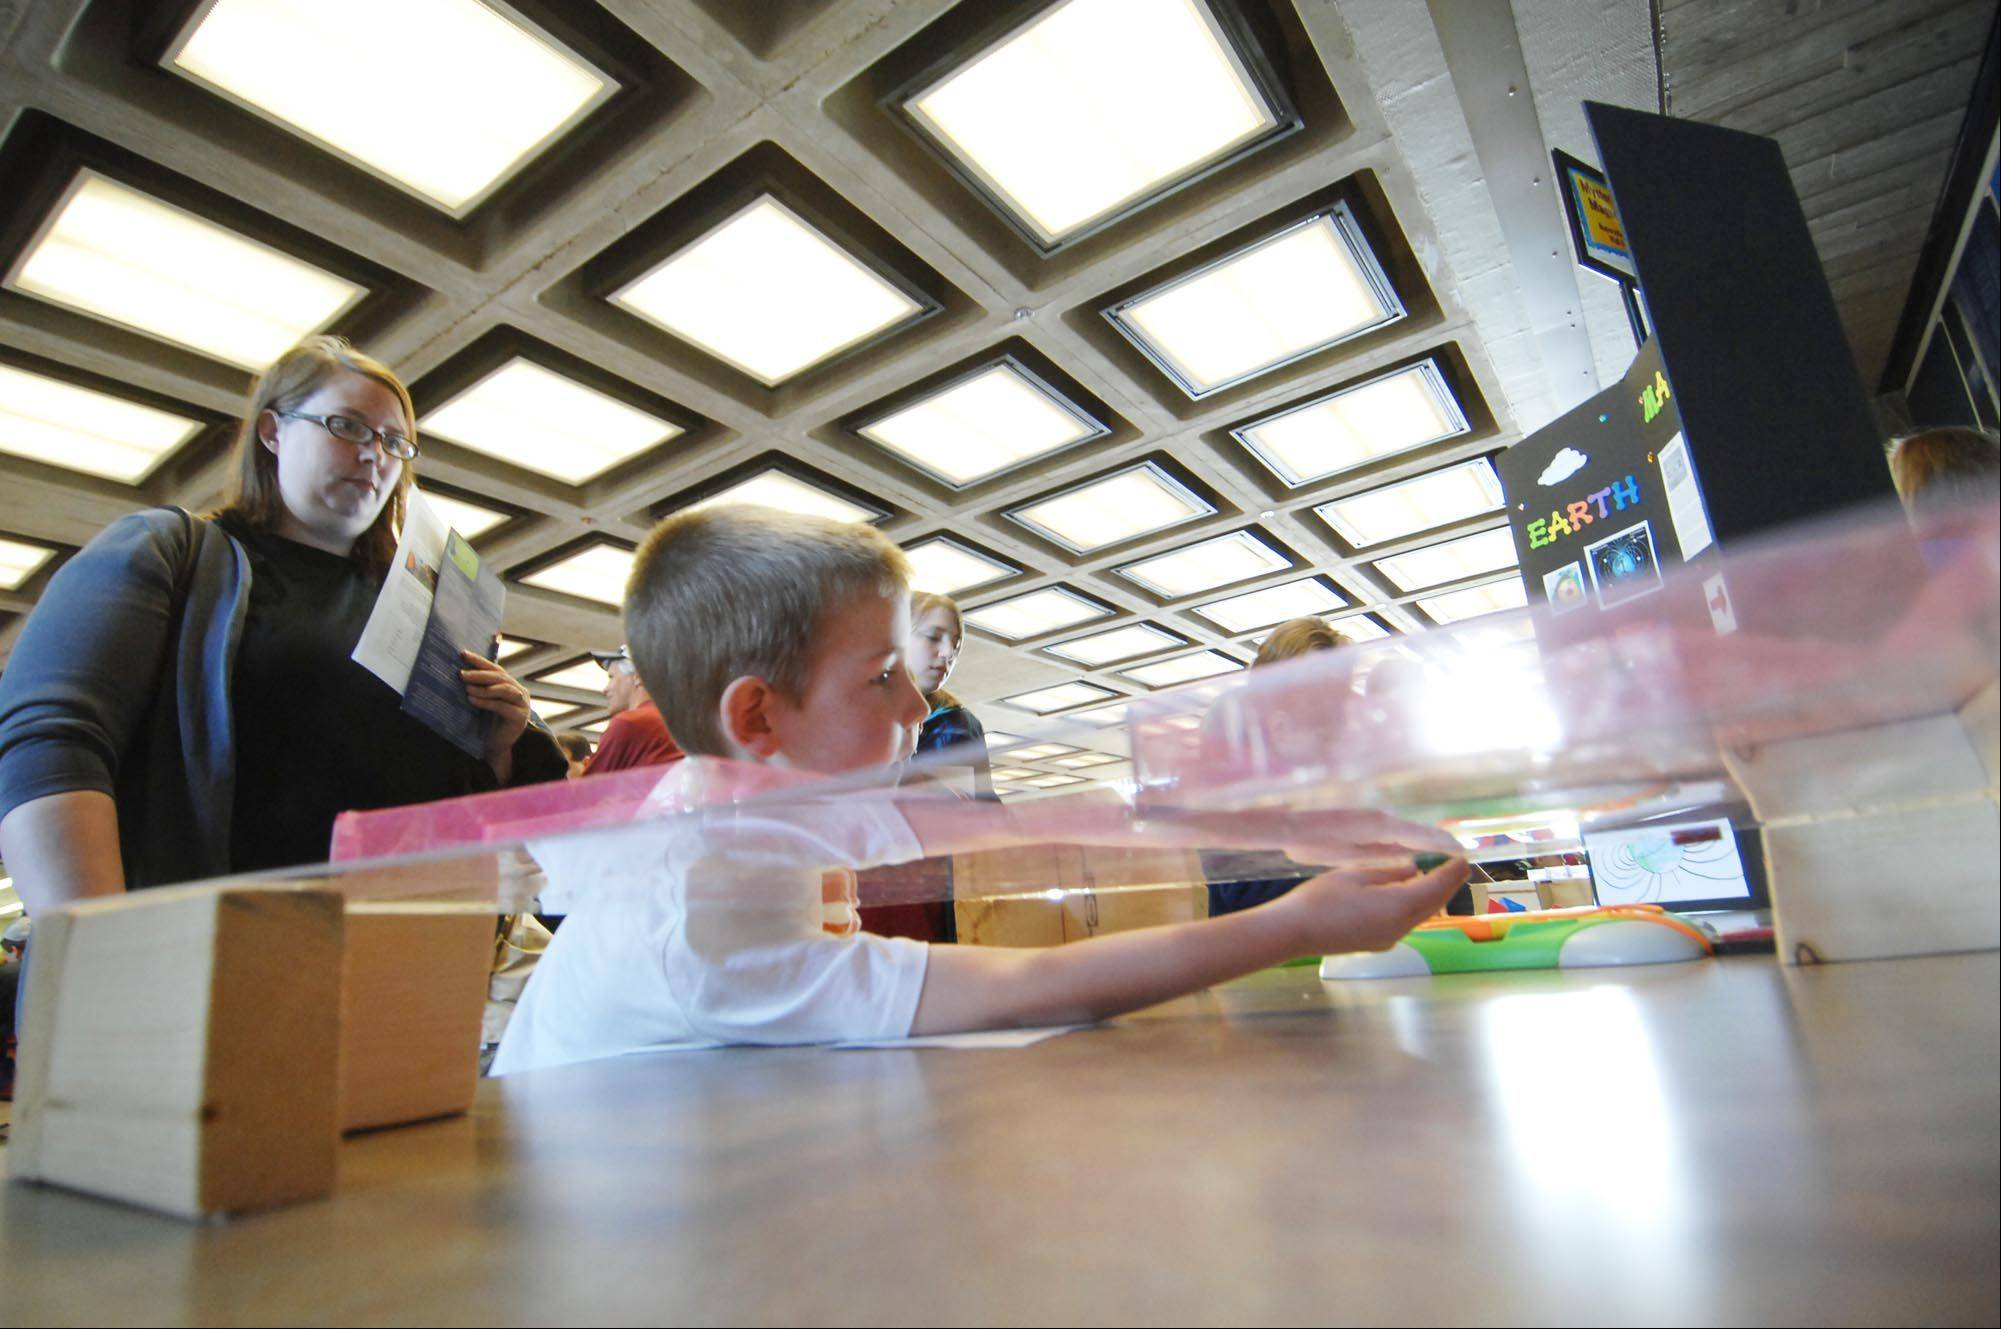 Henry Hanson of Gilberts reaches to guide a pair of magnets through a maze, created by Naperville Central High School students, during last year's Fermilab Family Open House in Batavia.